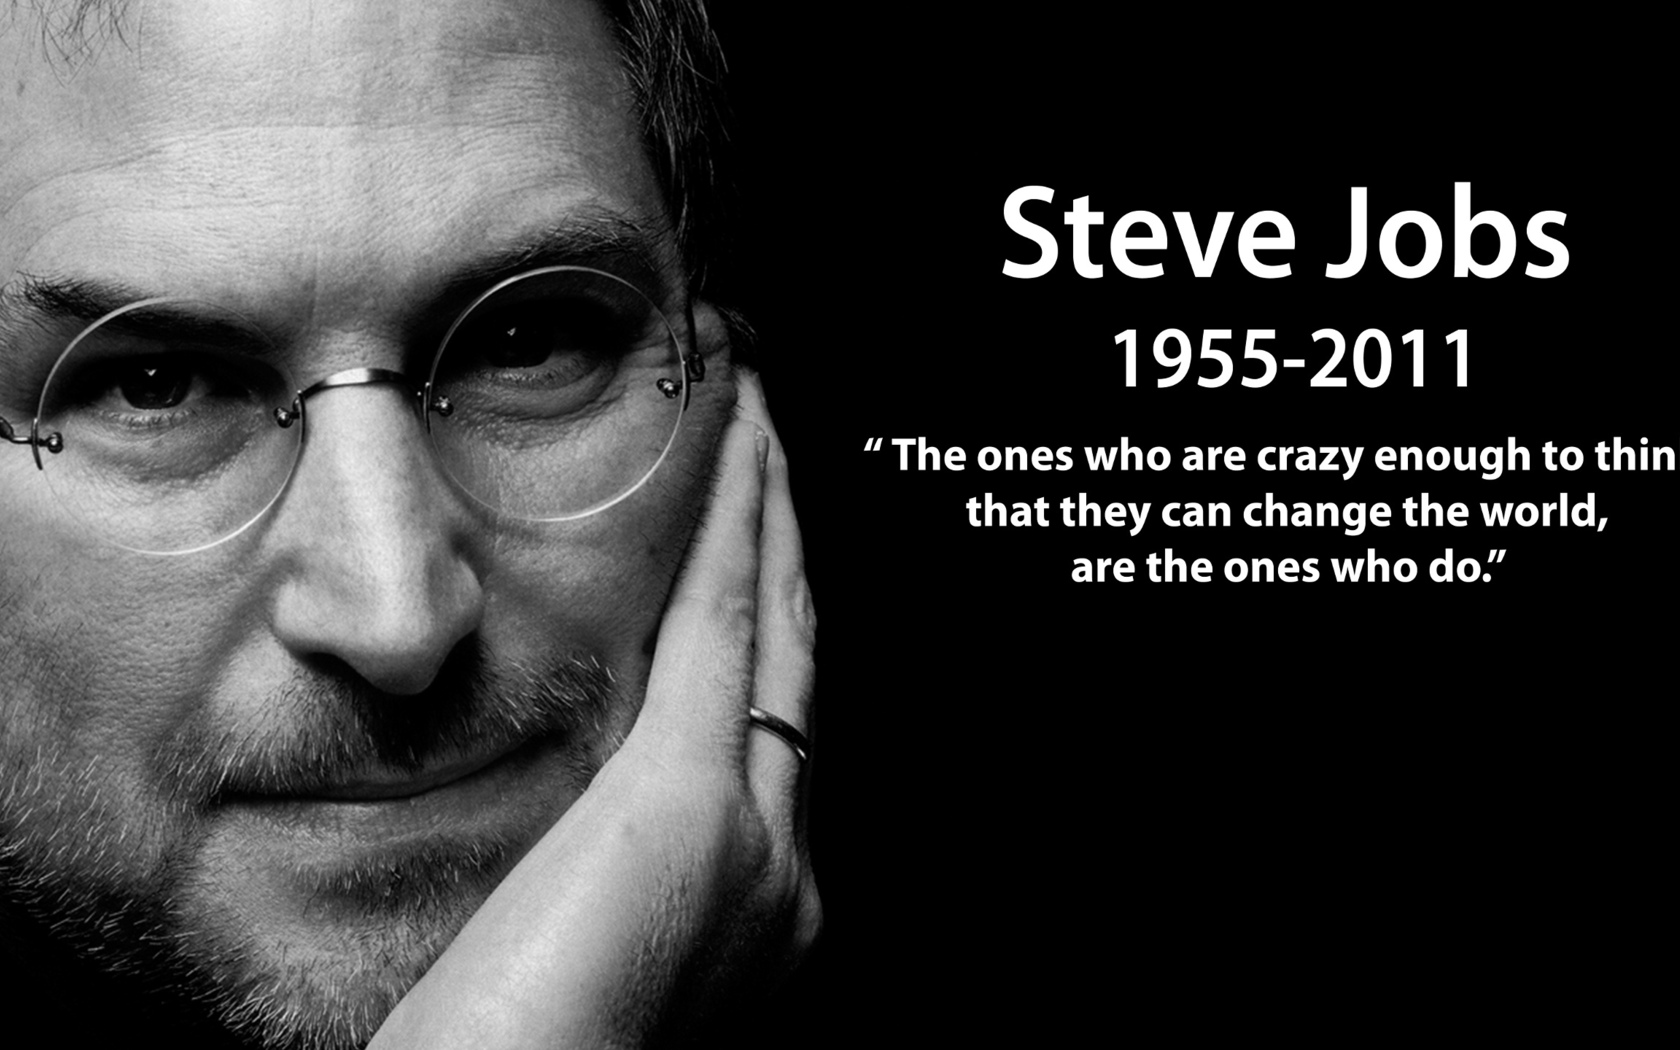 Most Famous Quotes Endearing Ten Quotes That Will Transform Your Job Hunt  Adzuna.ca Blog